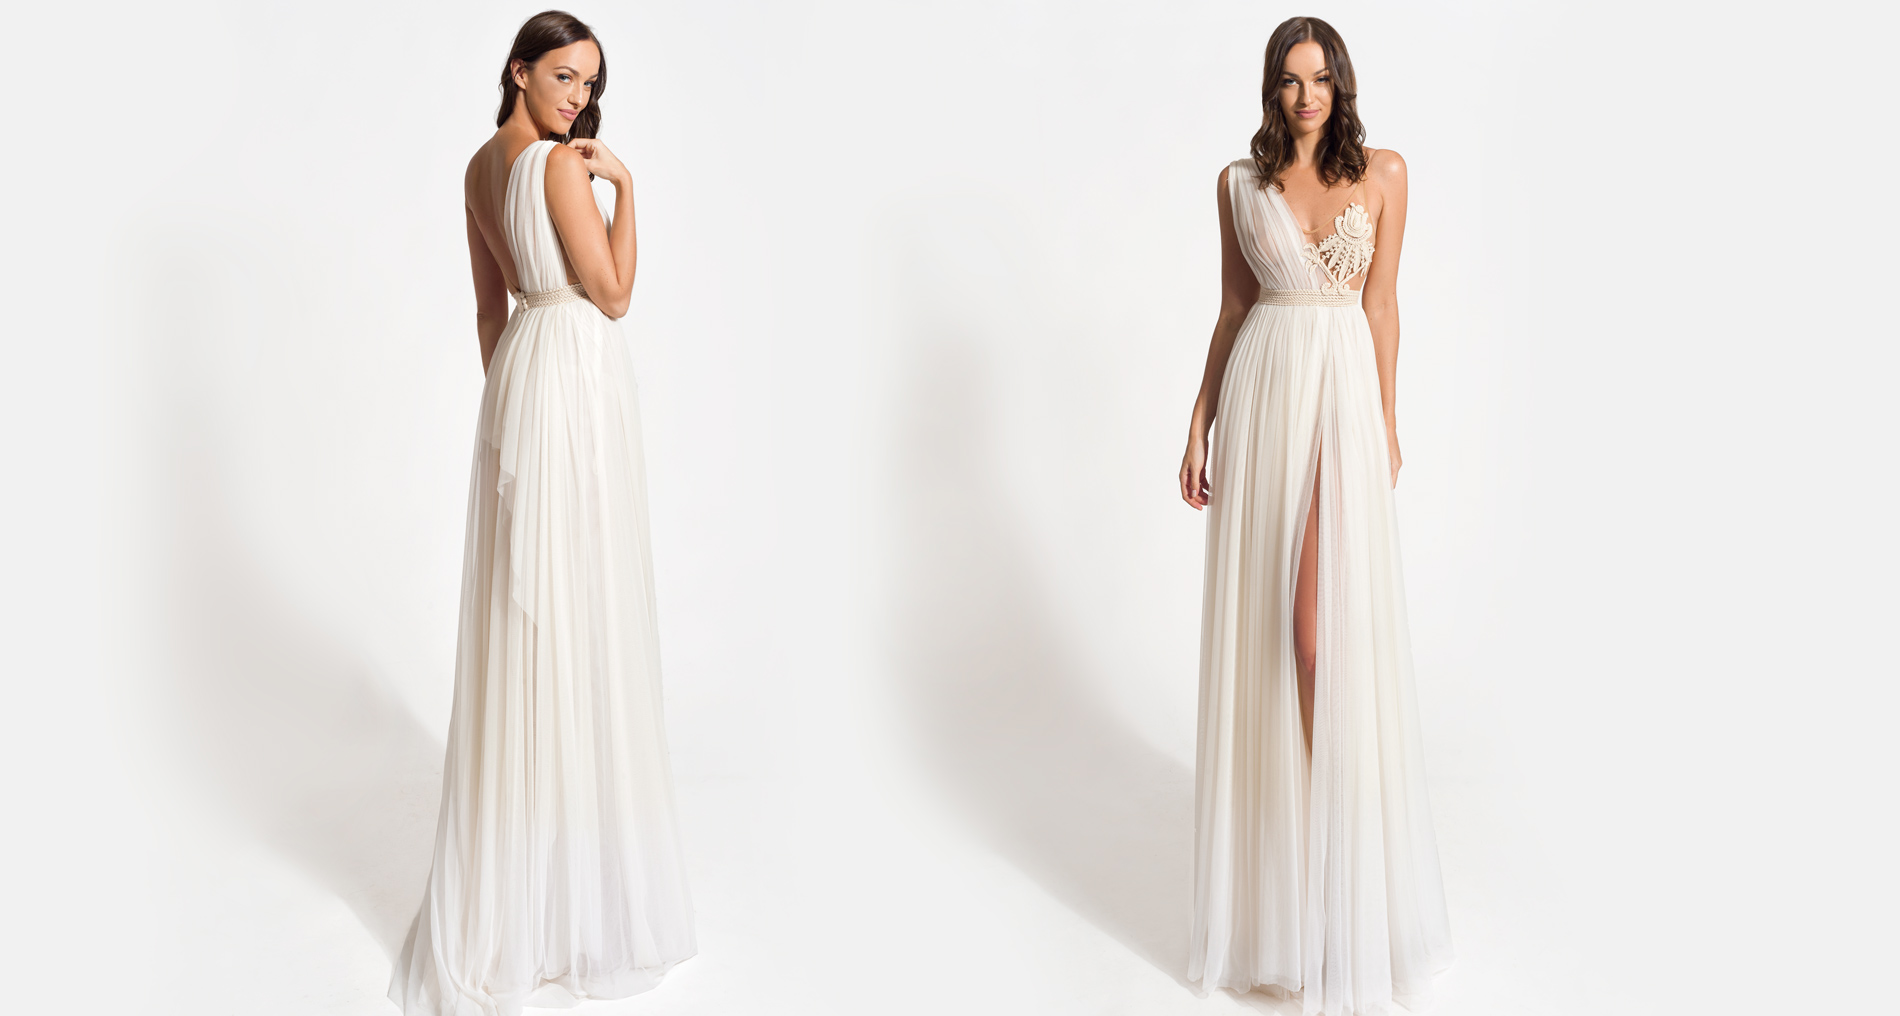 Lyto wedding dress from  Hellenic Vintage Origin Collection